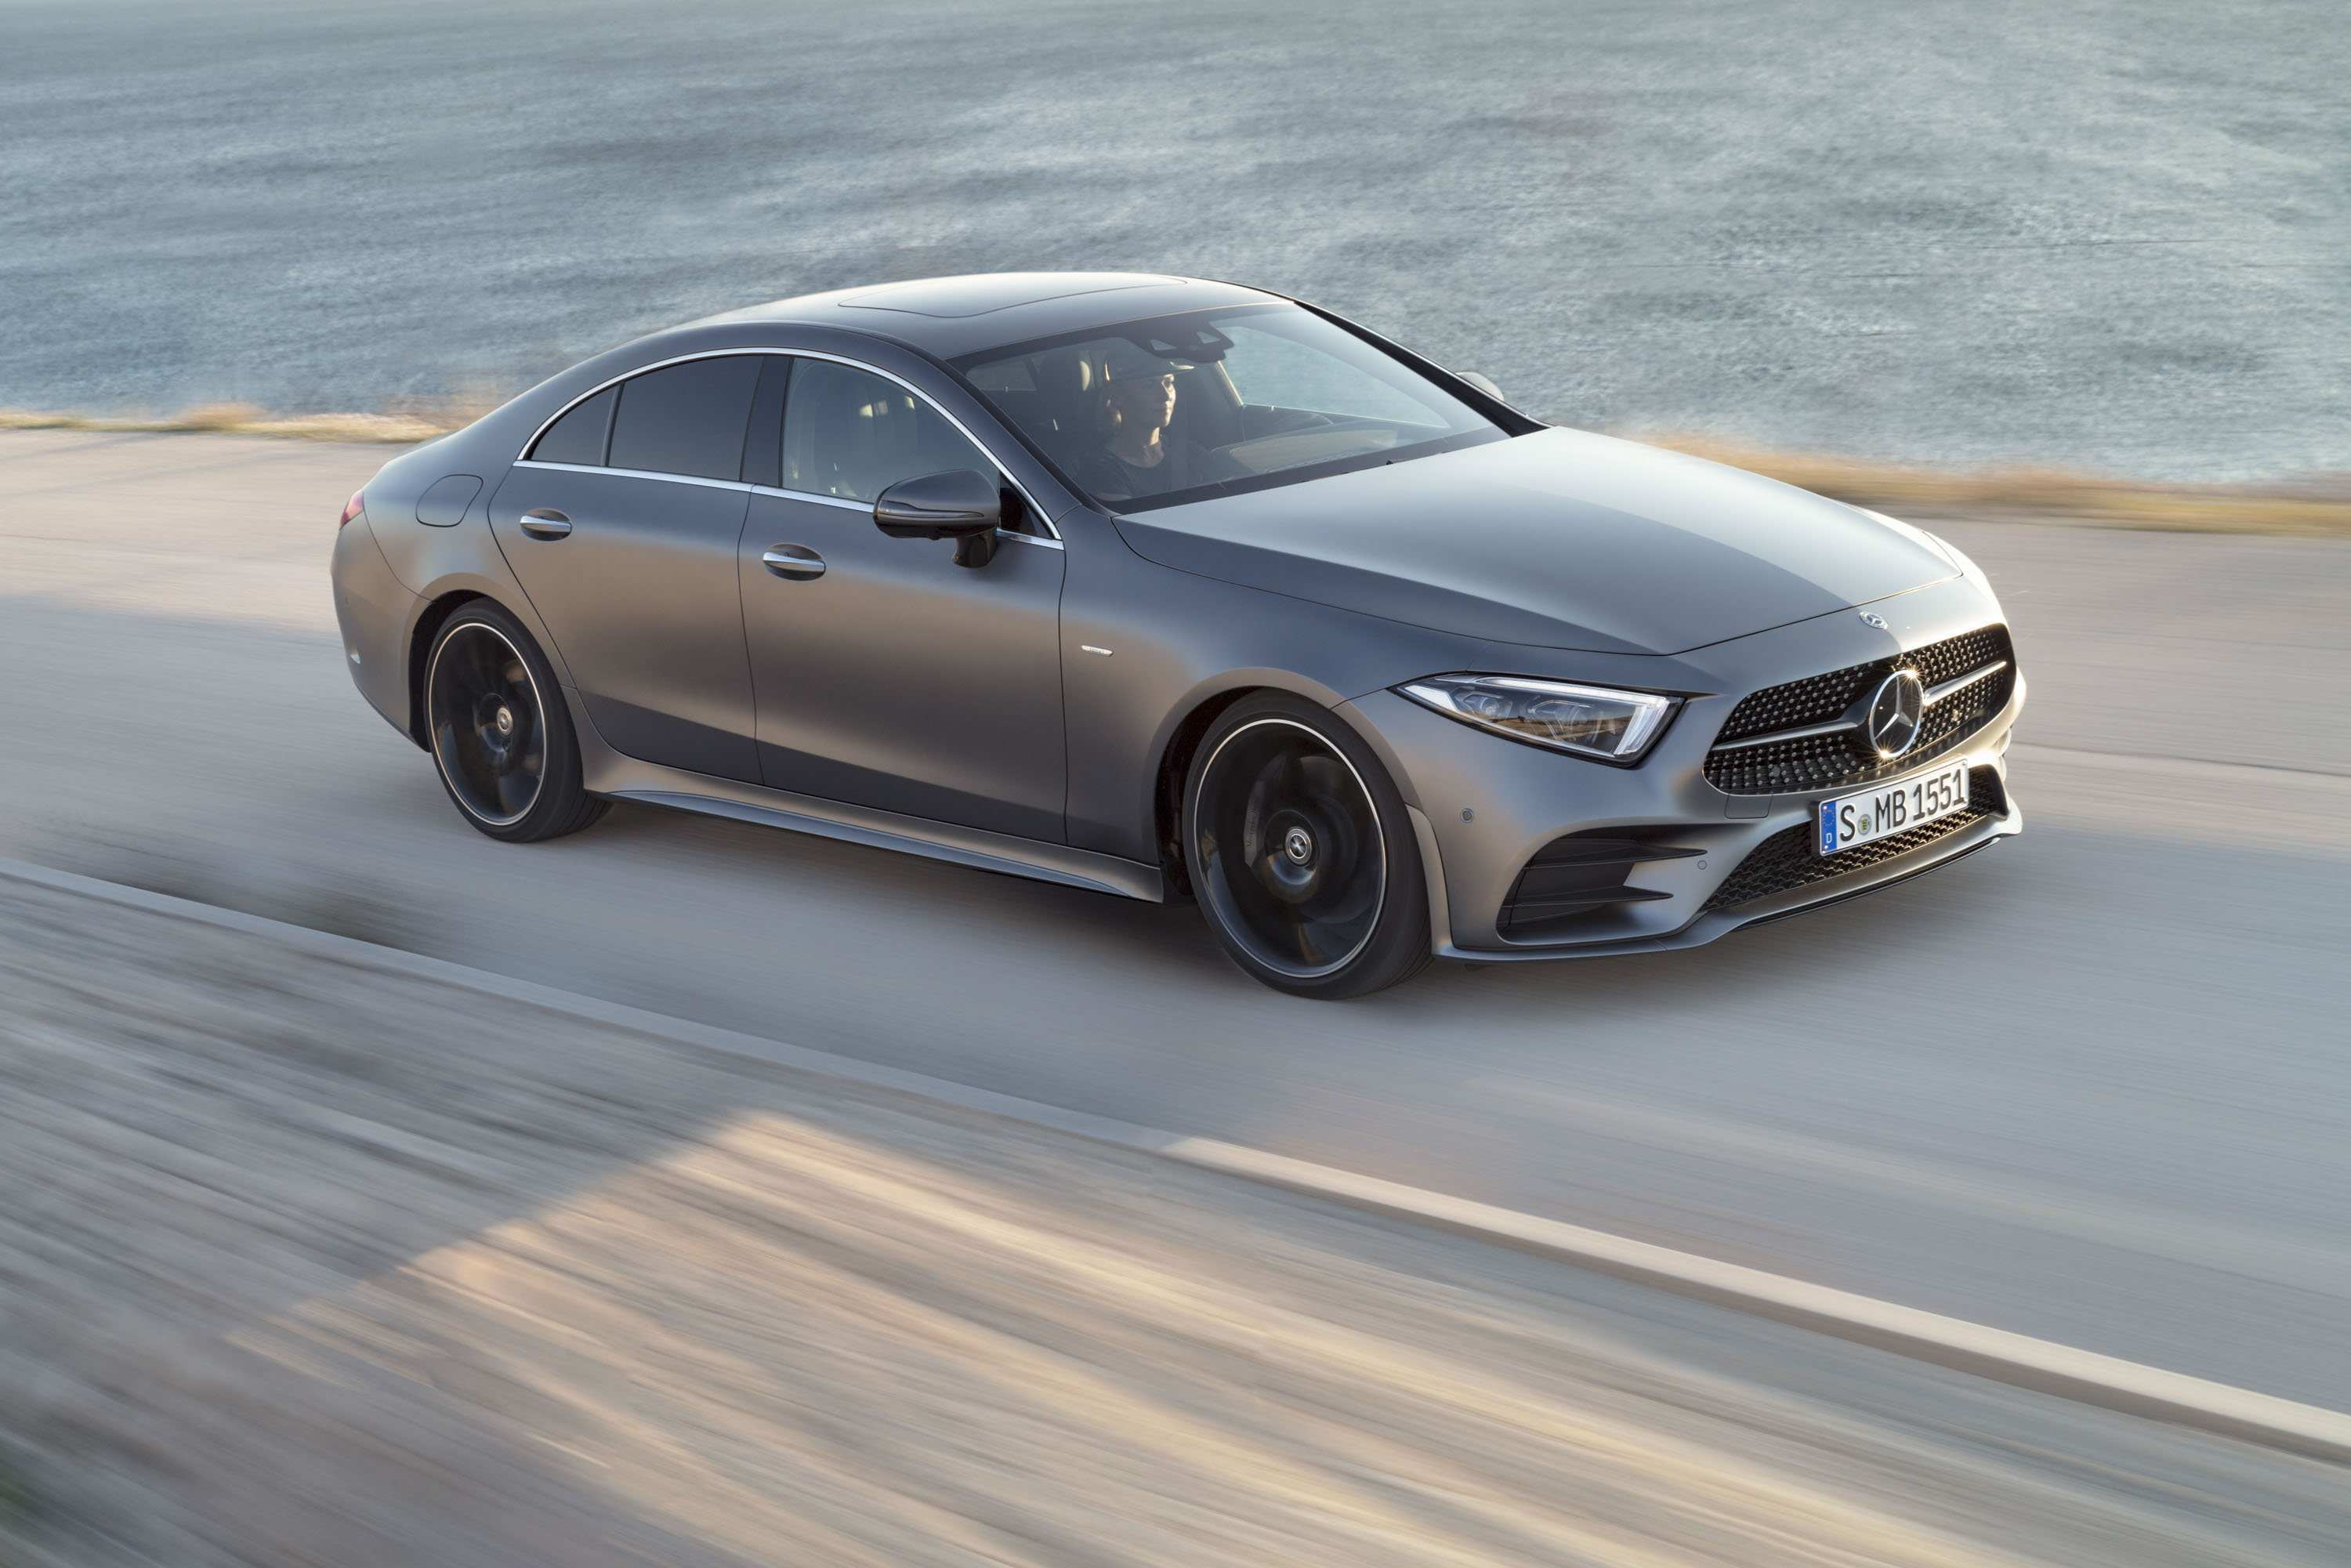 86 New Mercedes Cls 2020 Concept for Mercedes Cls 2020